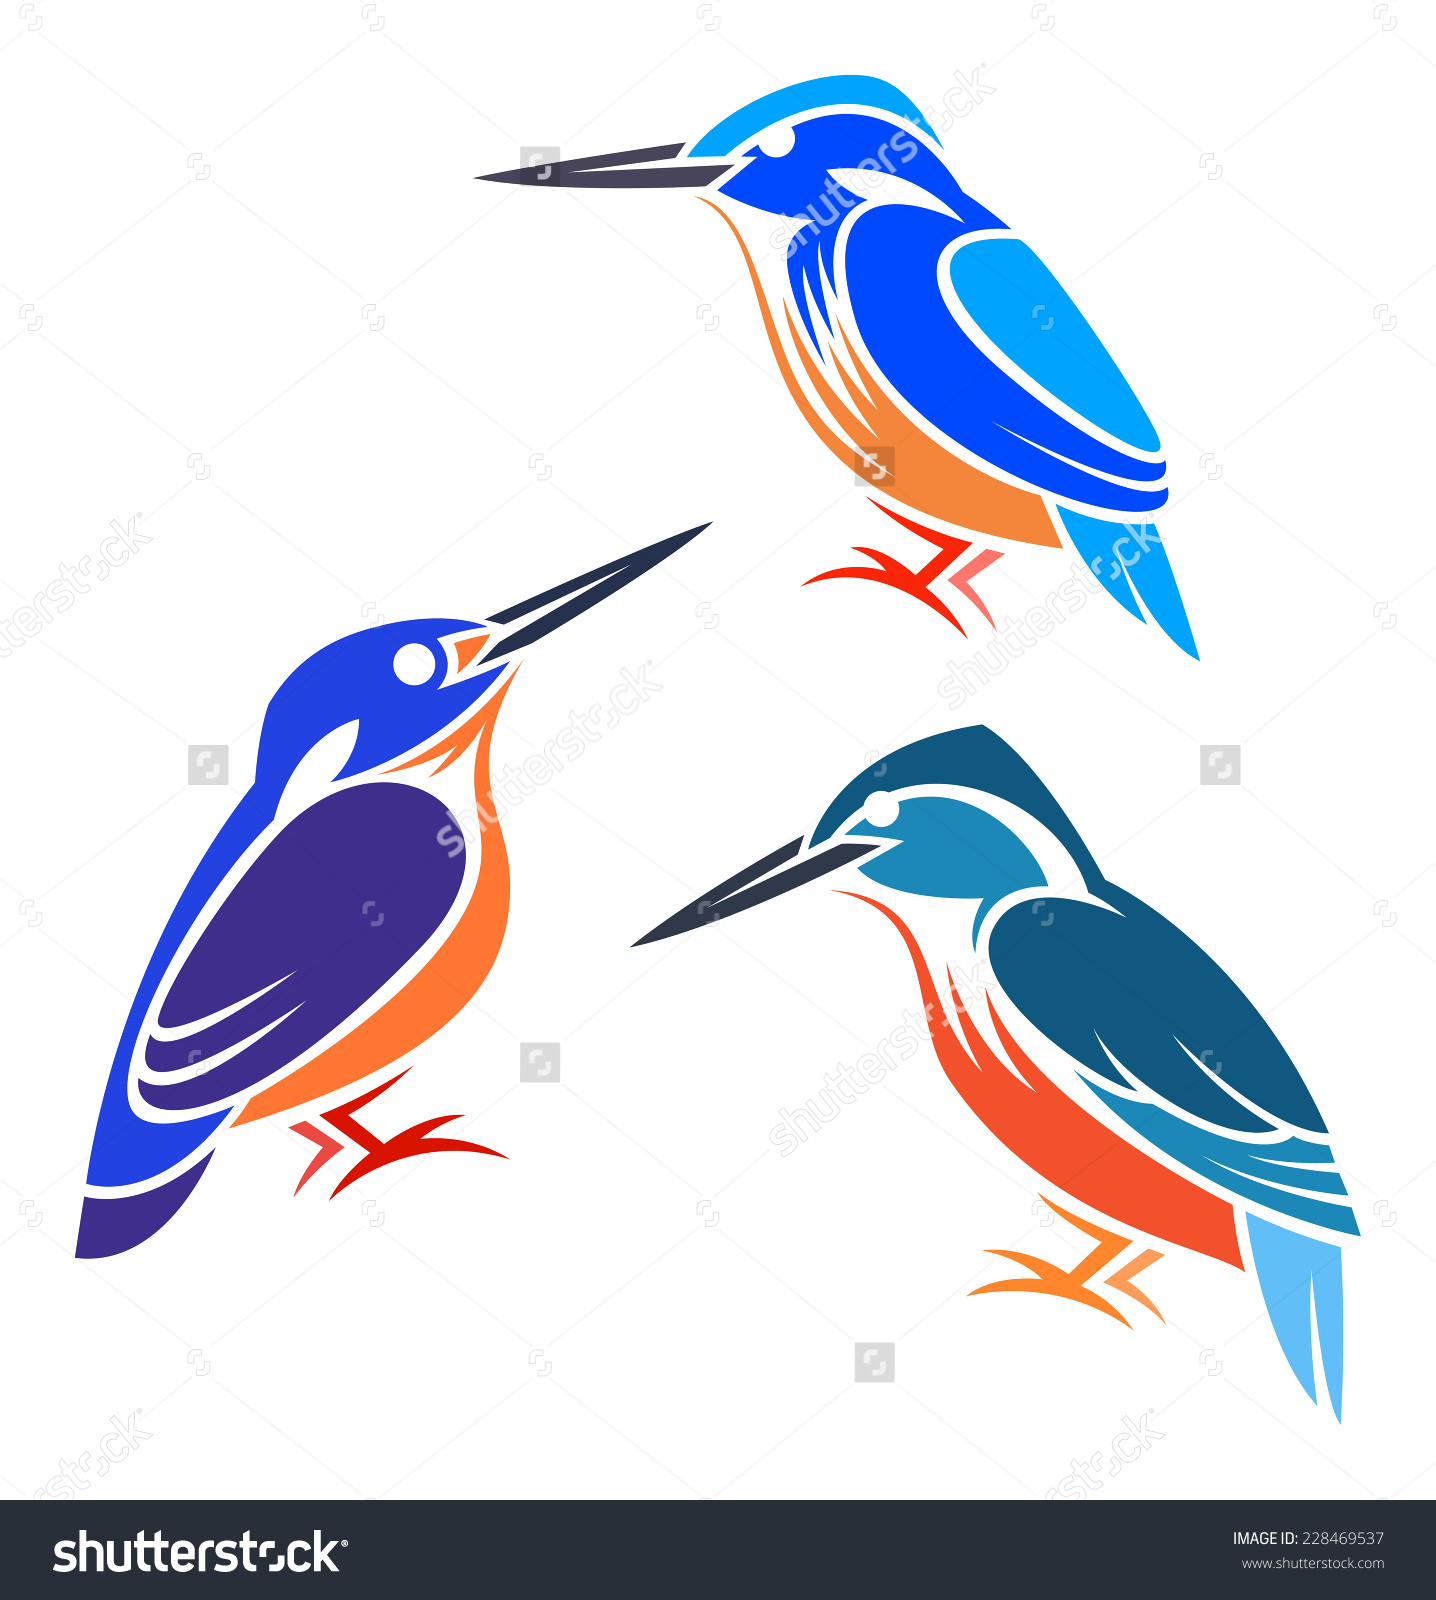 Azure Kingfisher clipart #2, Download drawings